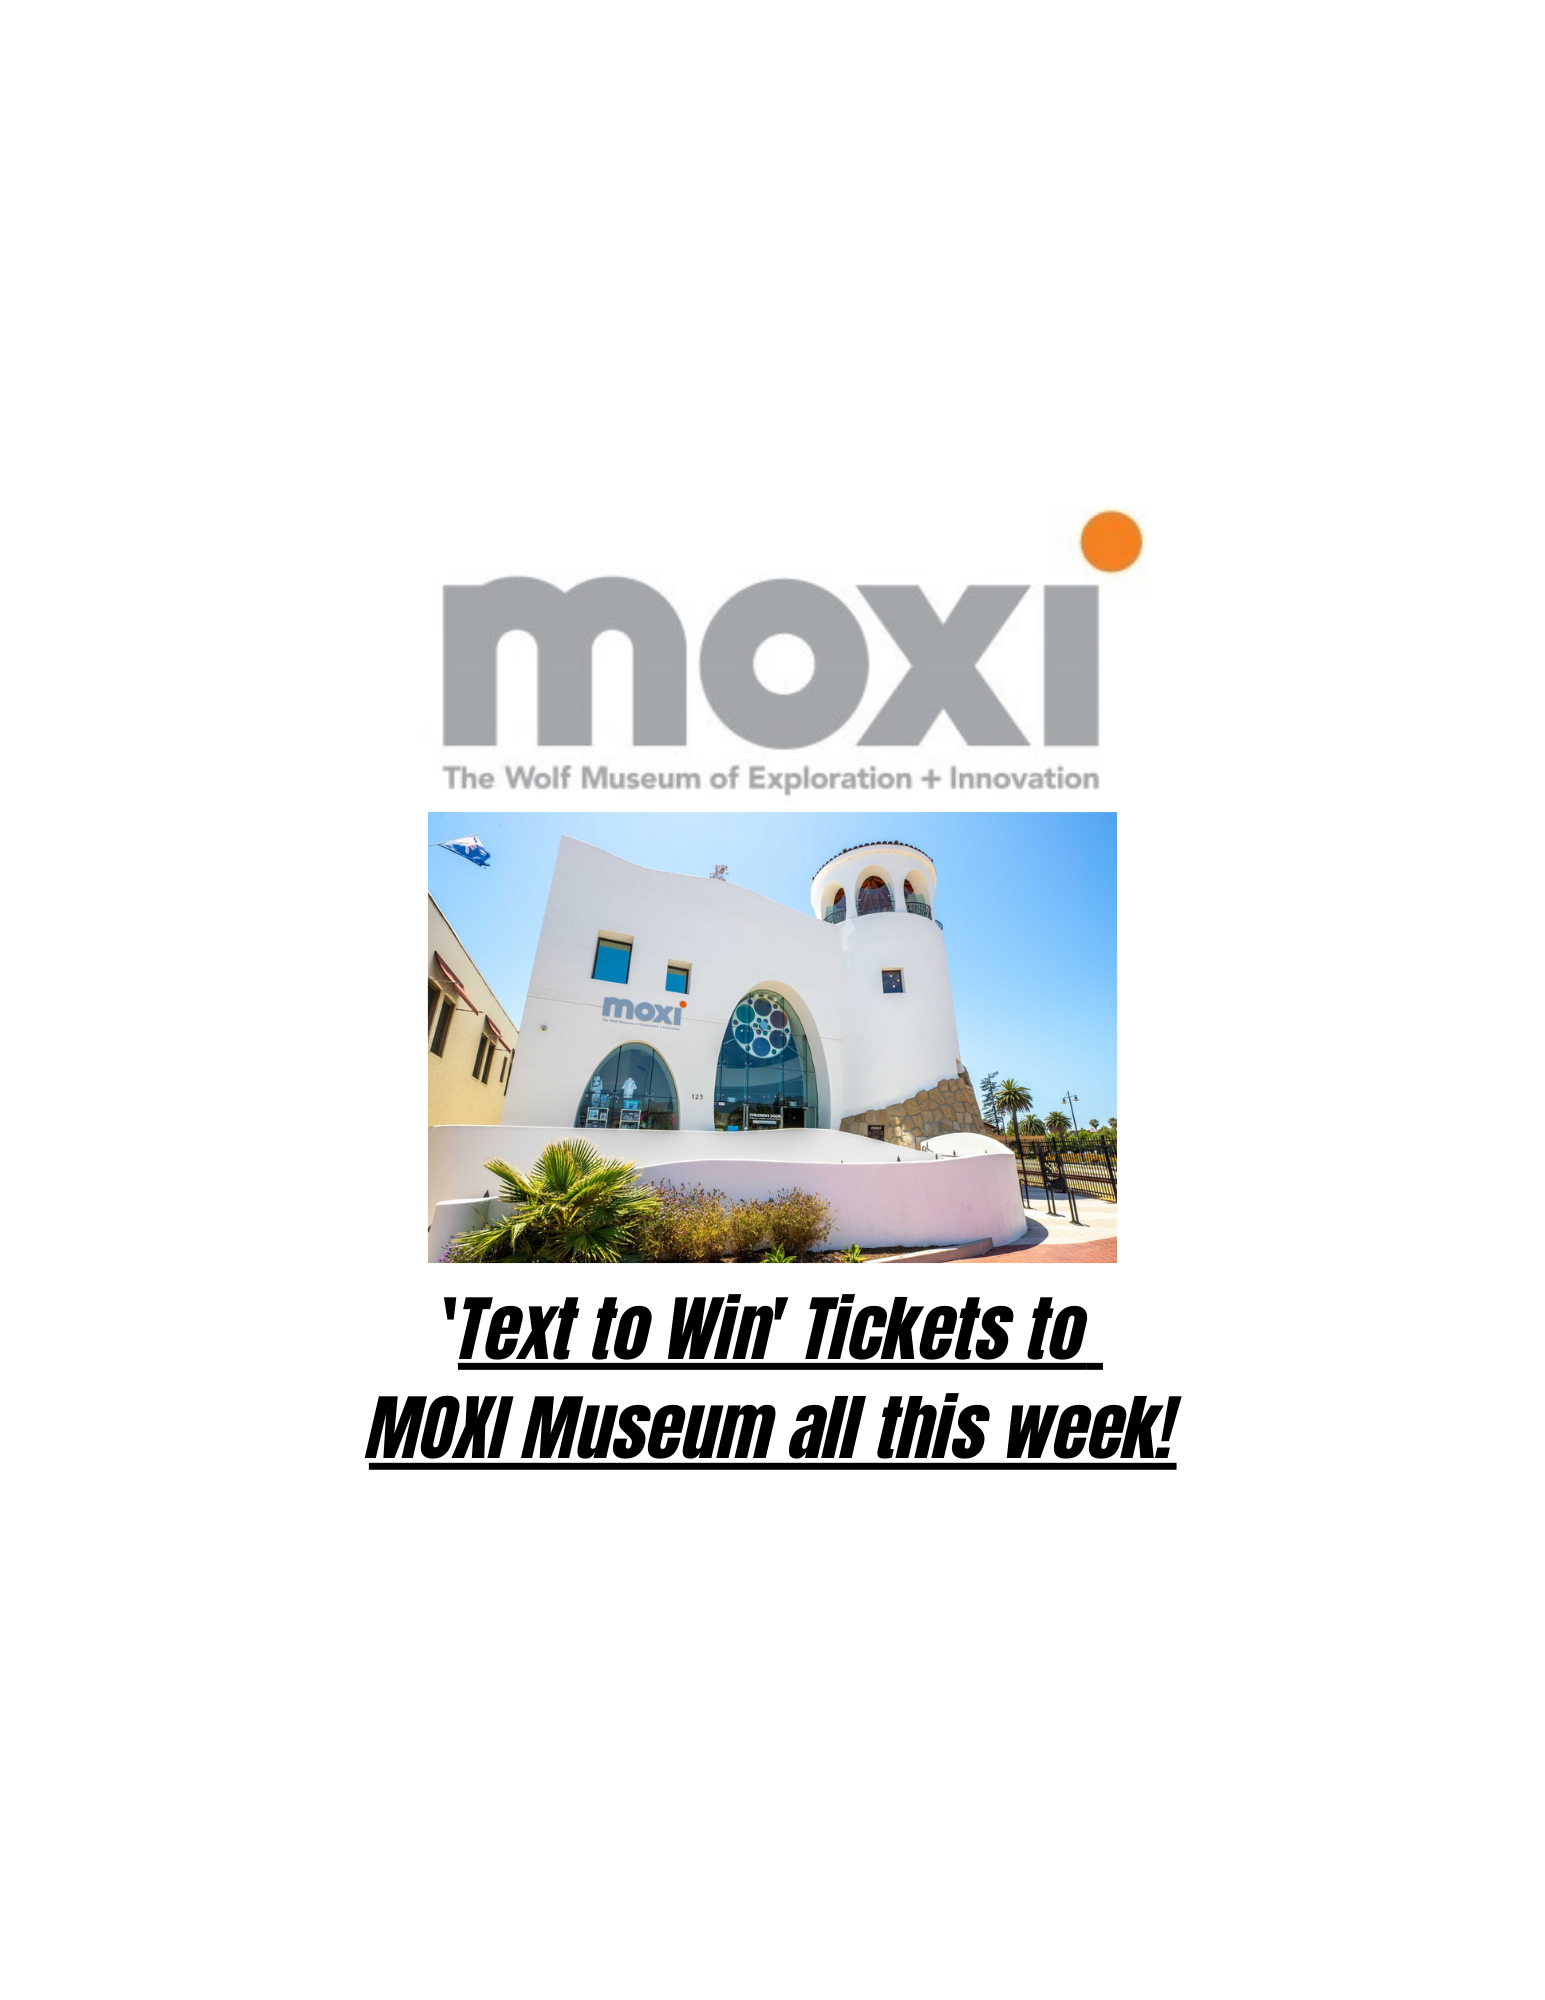 MOXI Museum Text to Win Contest Rules